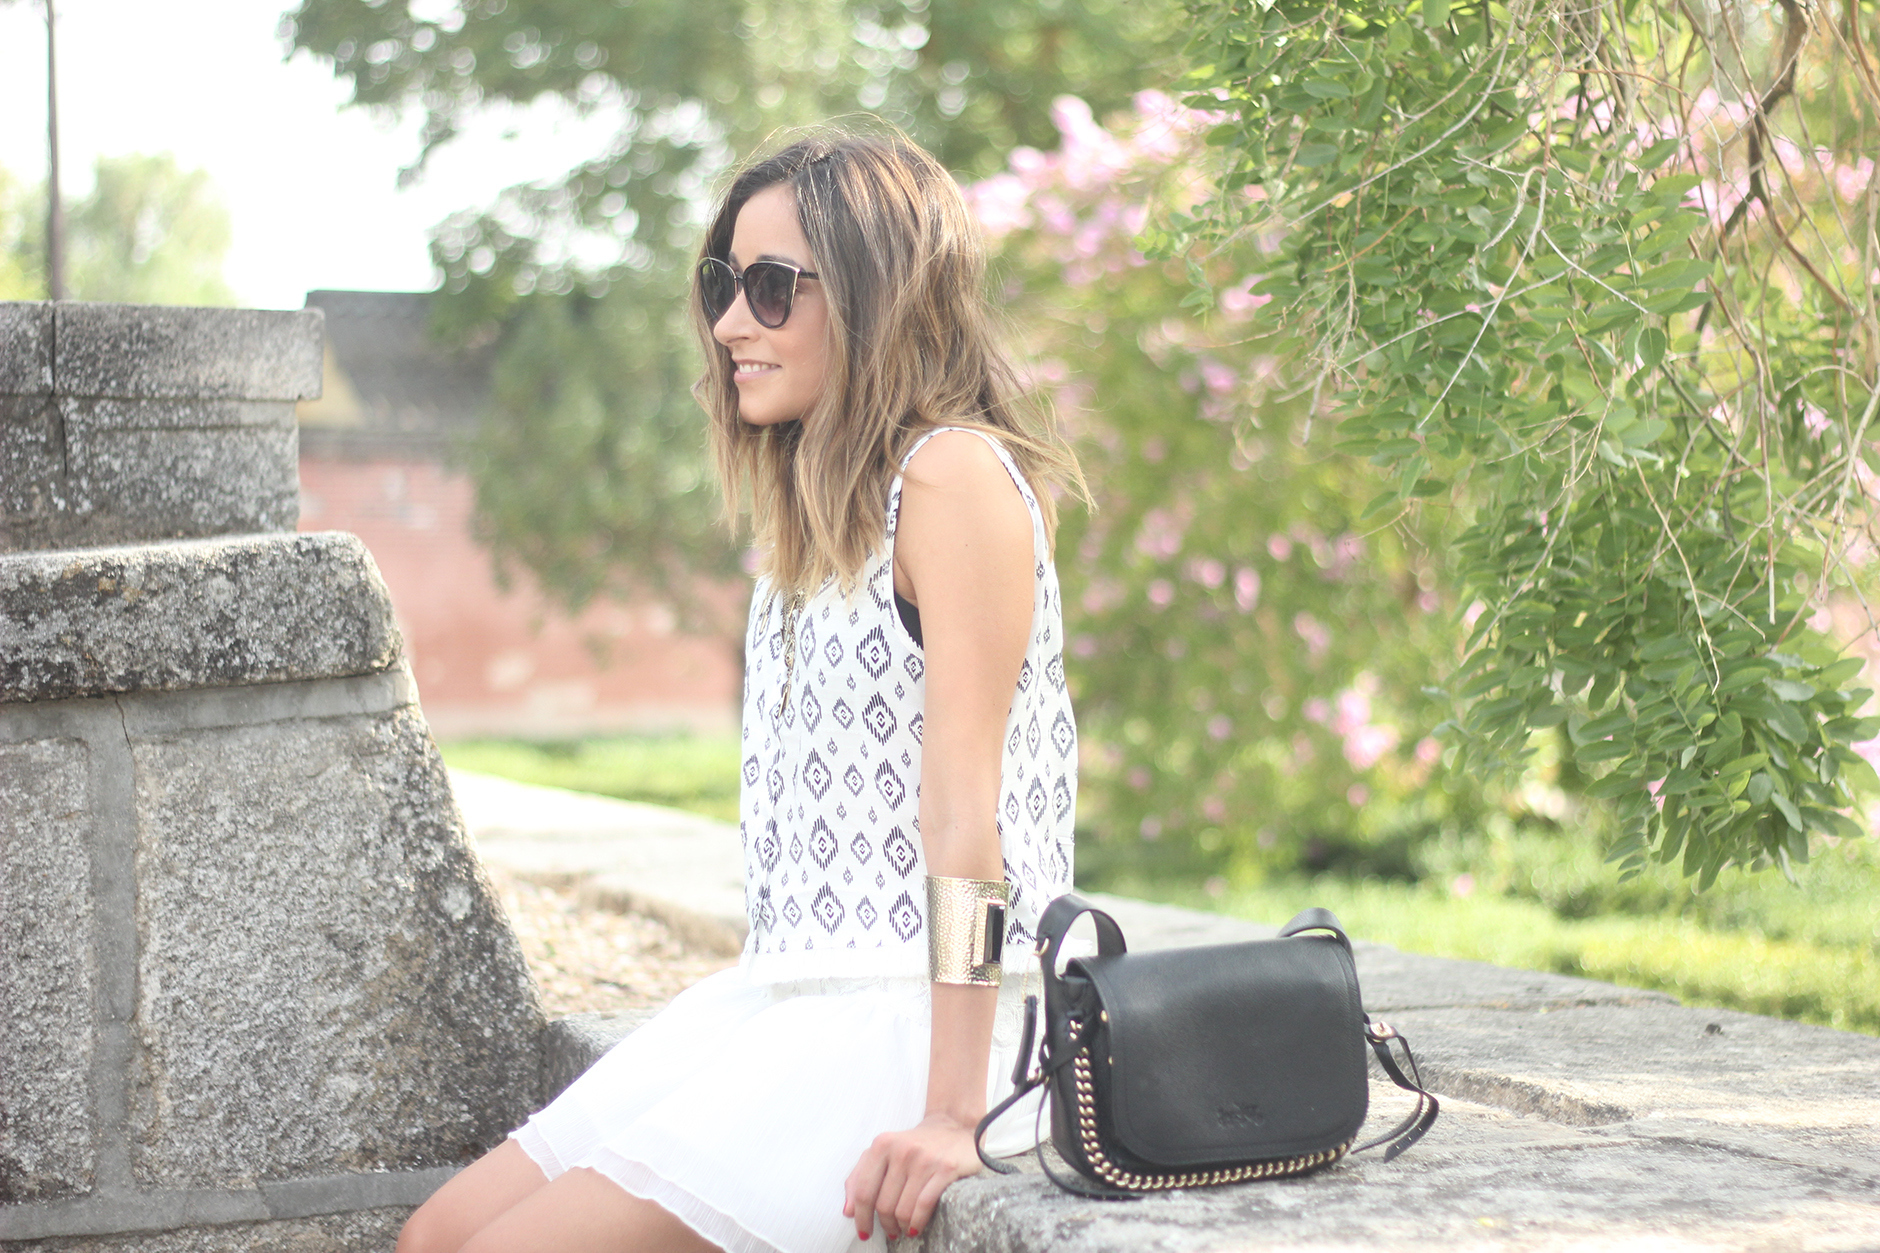 Black & White Summer Outfit Mango02